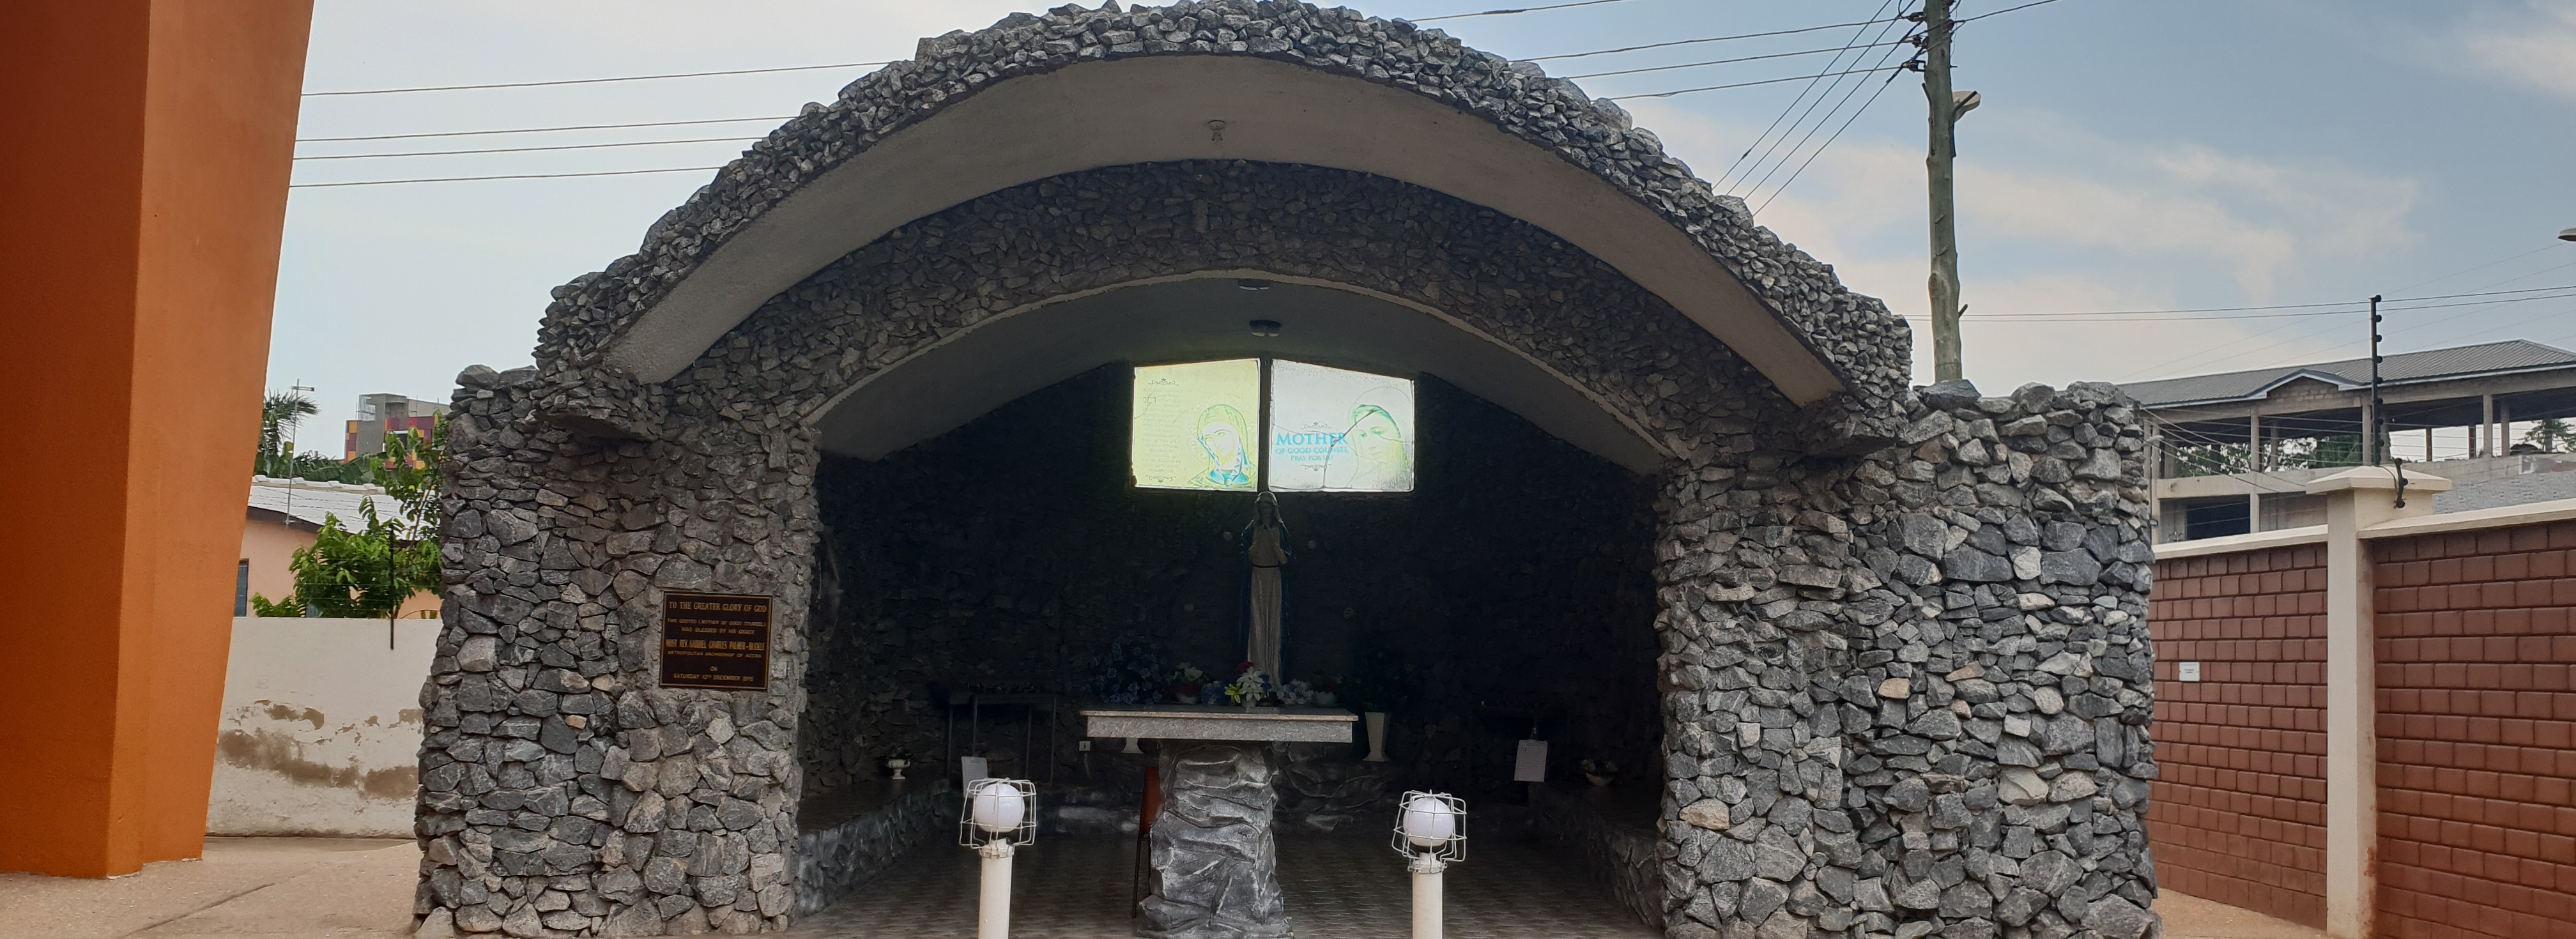 St Theresa Church grotto wide view